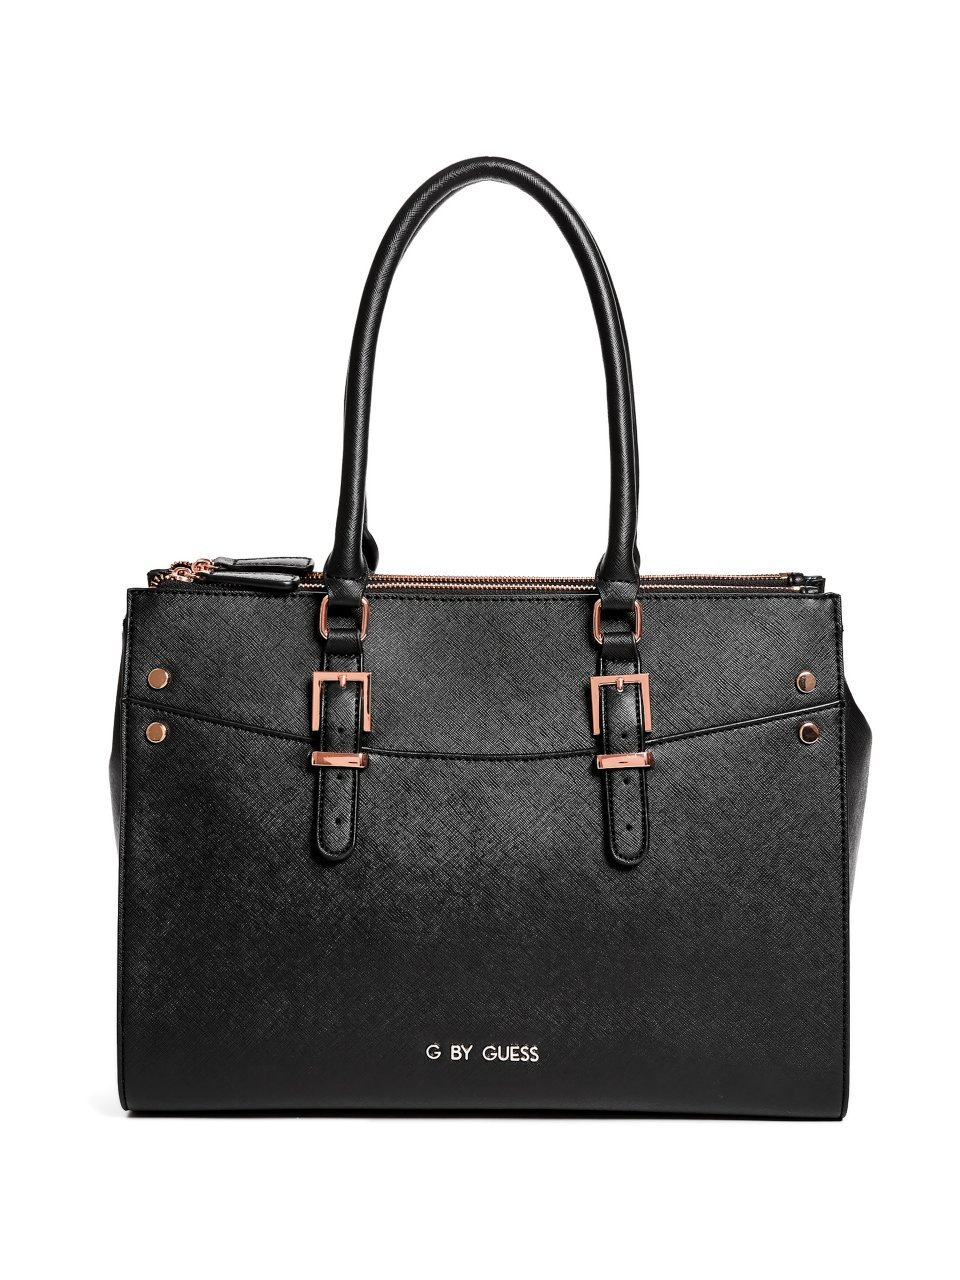 G by GUESS Women's Oak River Carryall